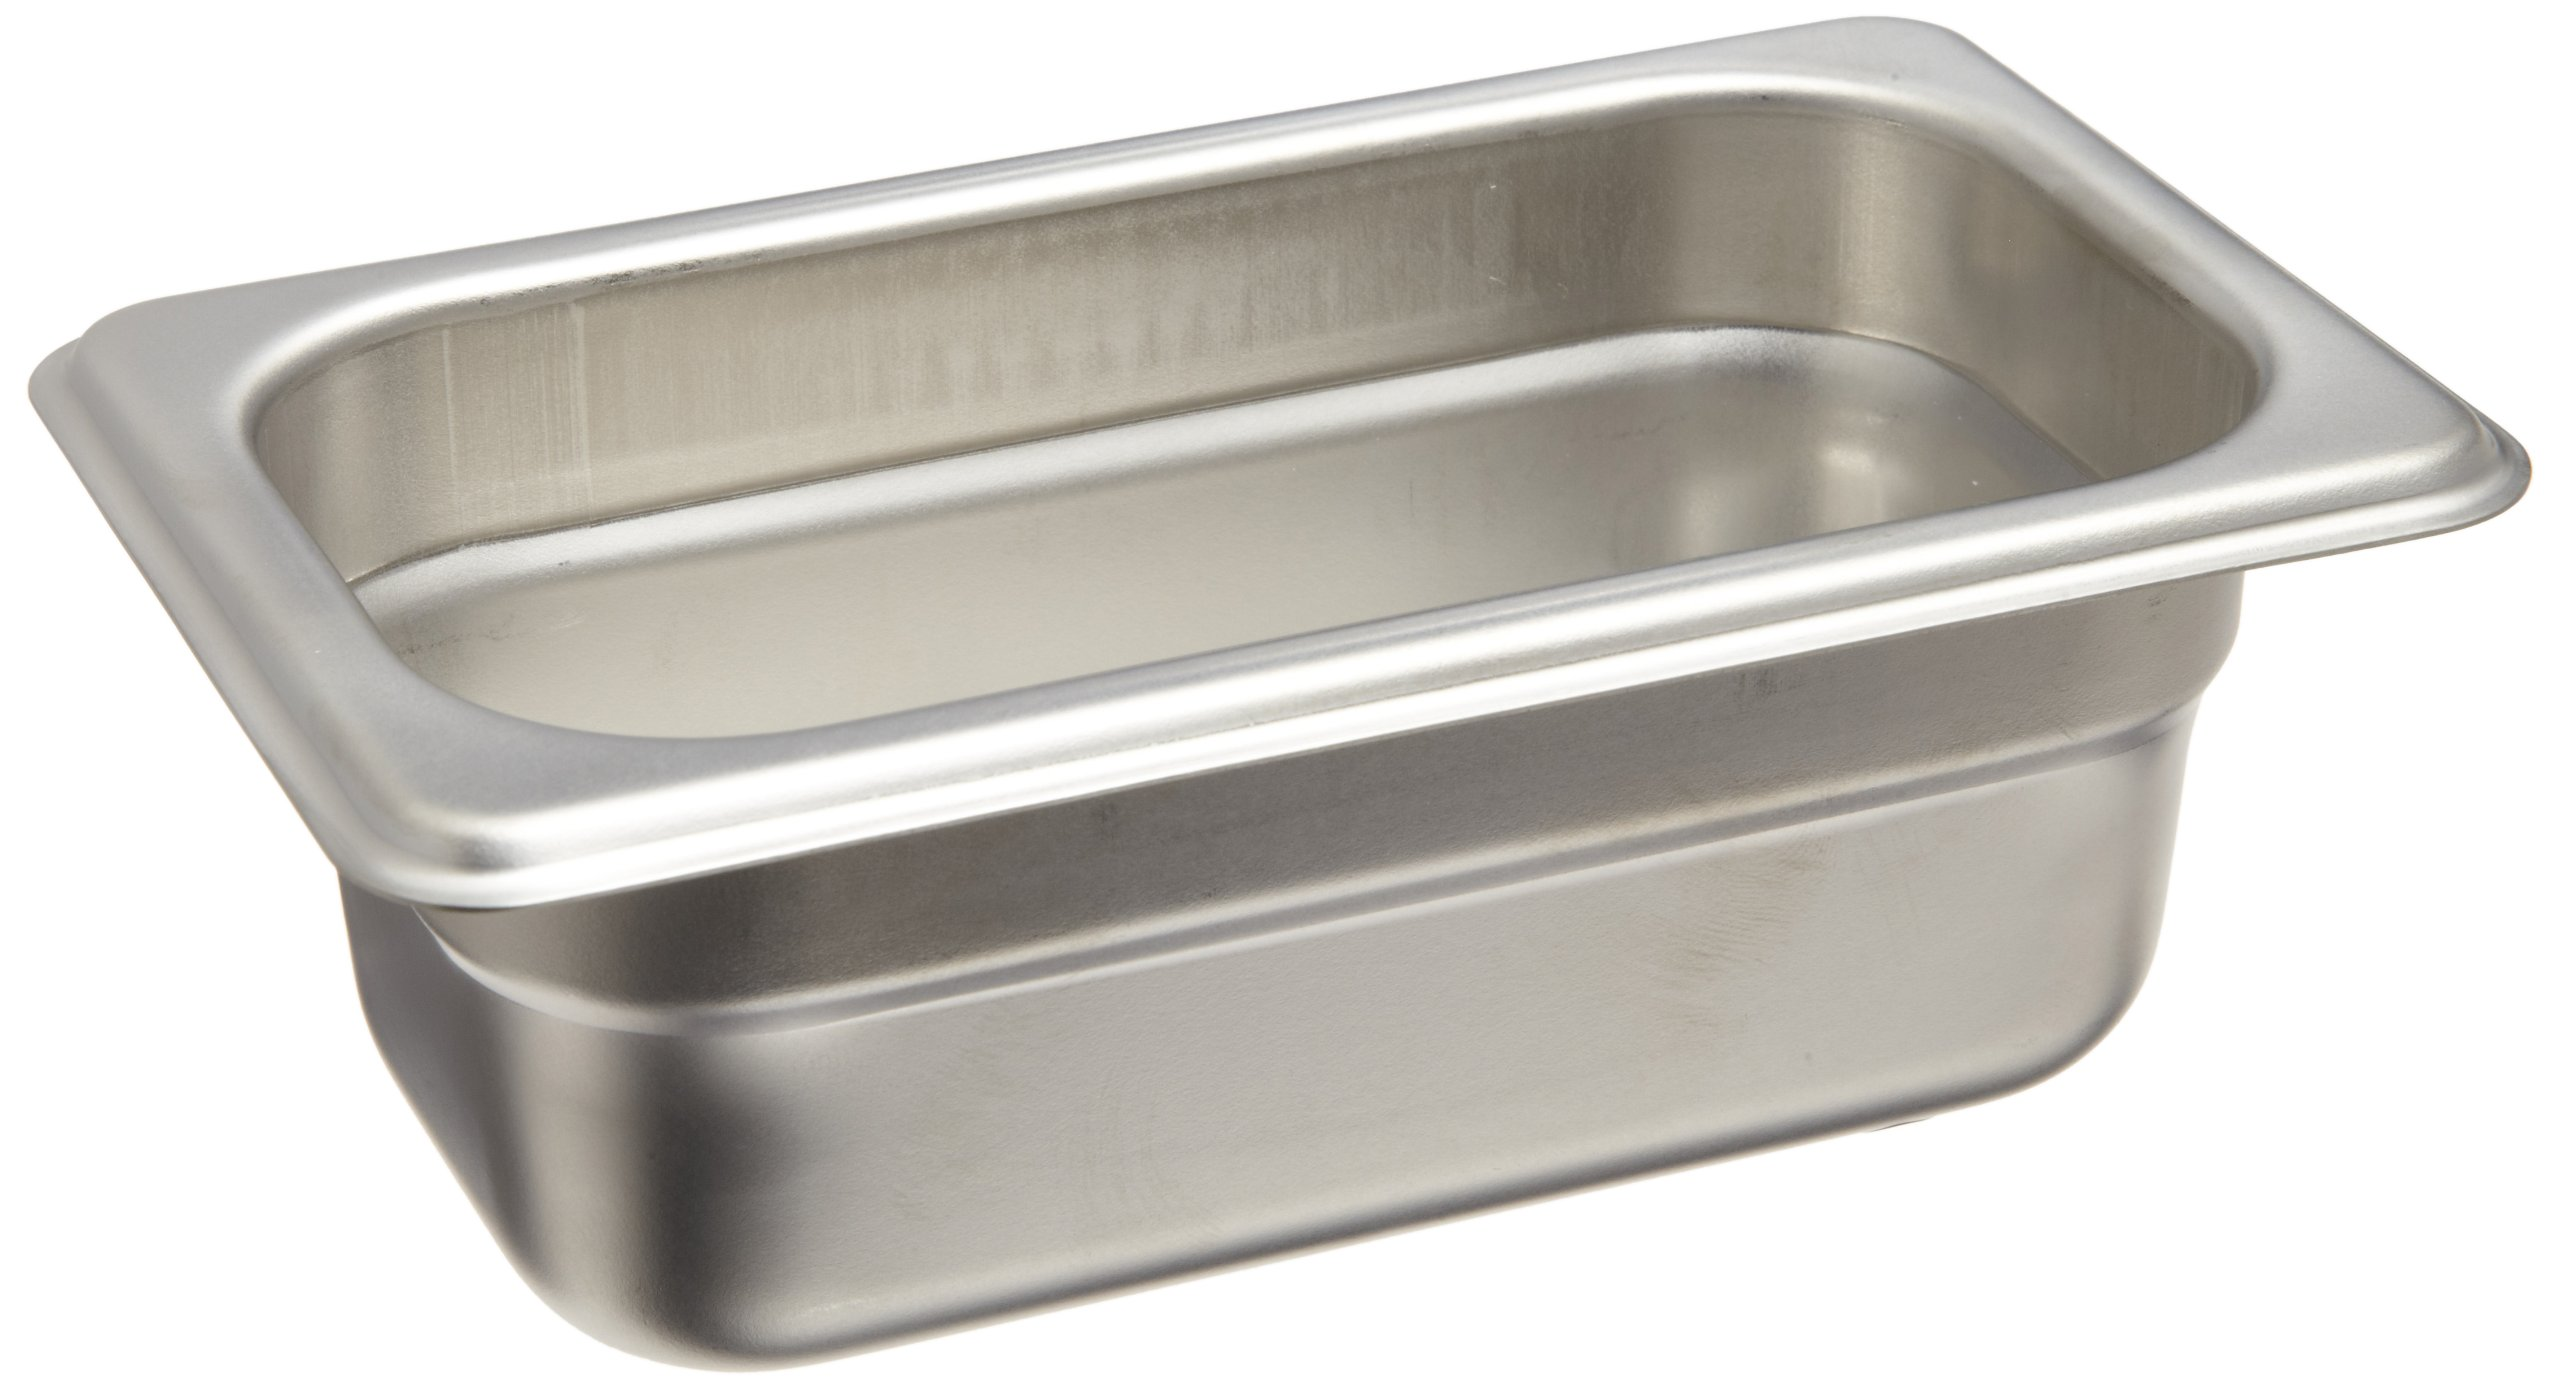 Carlisle DuraPan 608194 18-8 Stainless Steel Heavy Gauge 1.70 Qt One-Ninth Size Pan, 6-7/8'' Length x 4-1/4'' Width x 4'' Depth